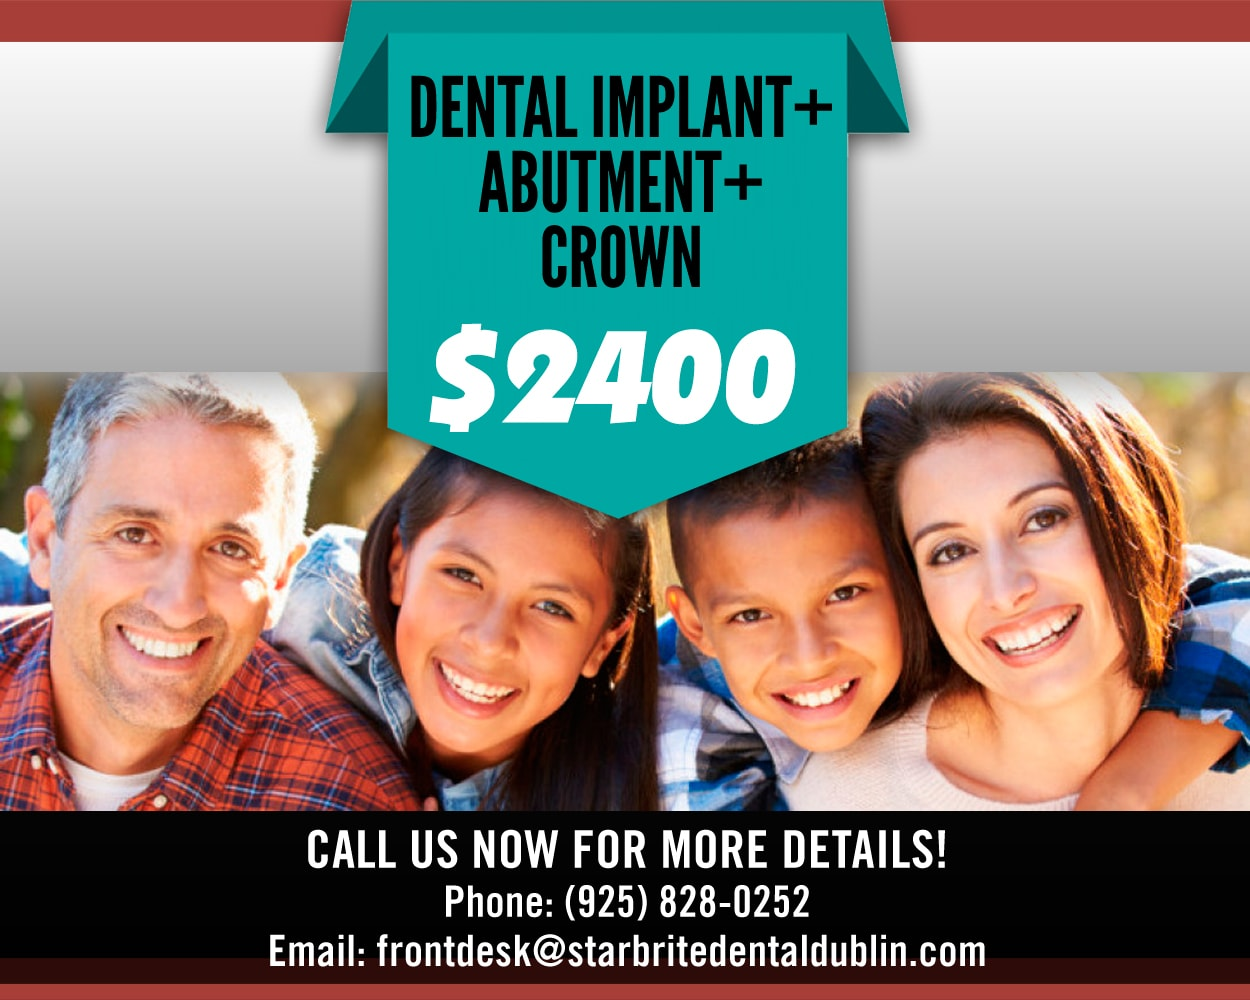 Dental Implant+Abutment+Crown, StarBrite Dental - Dublin